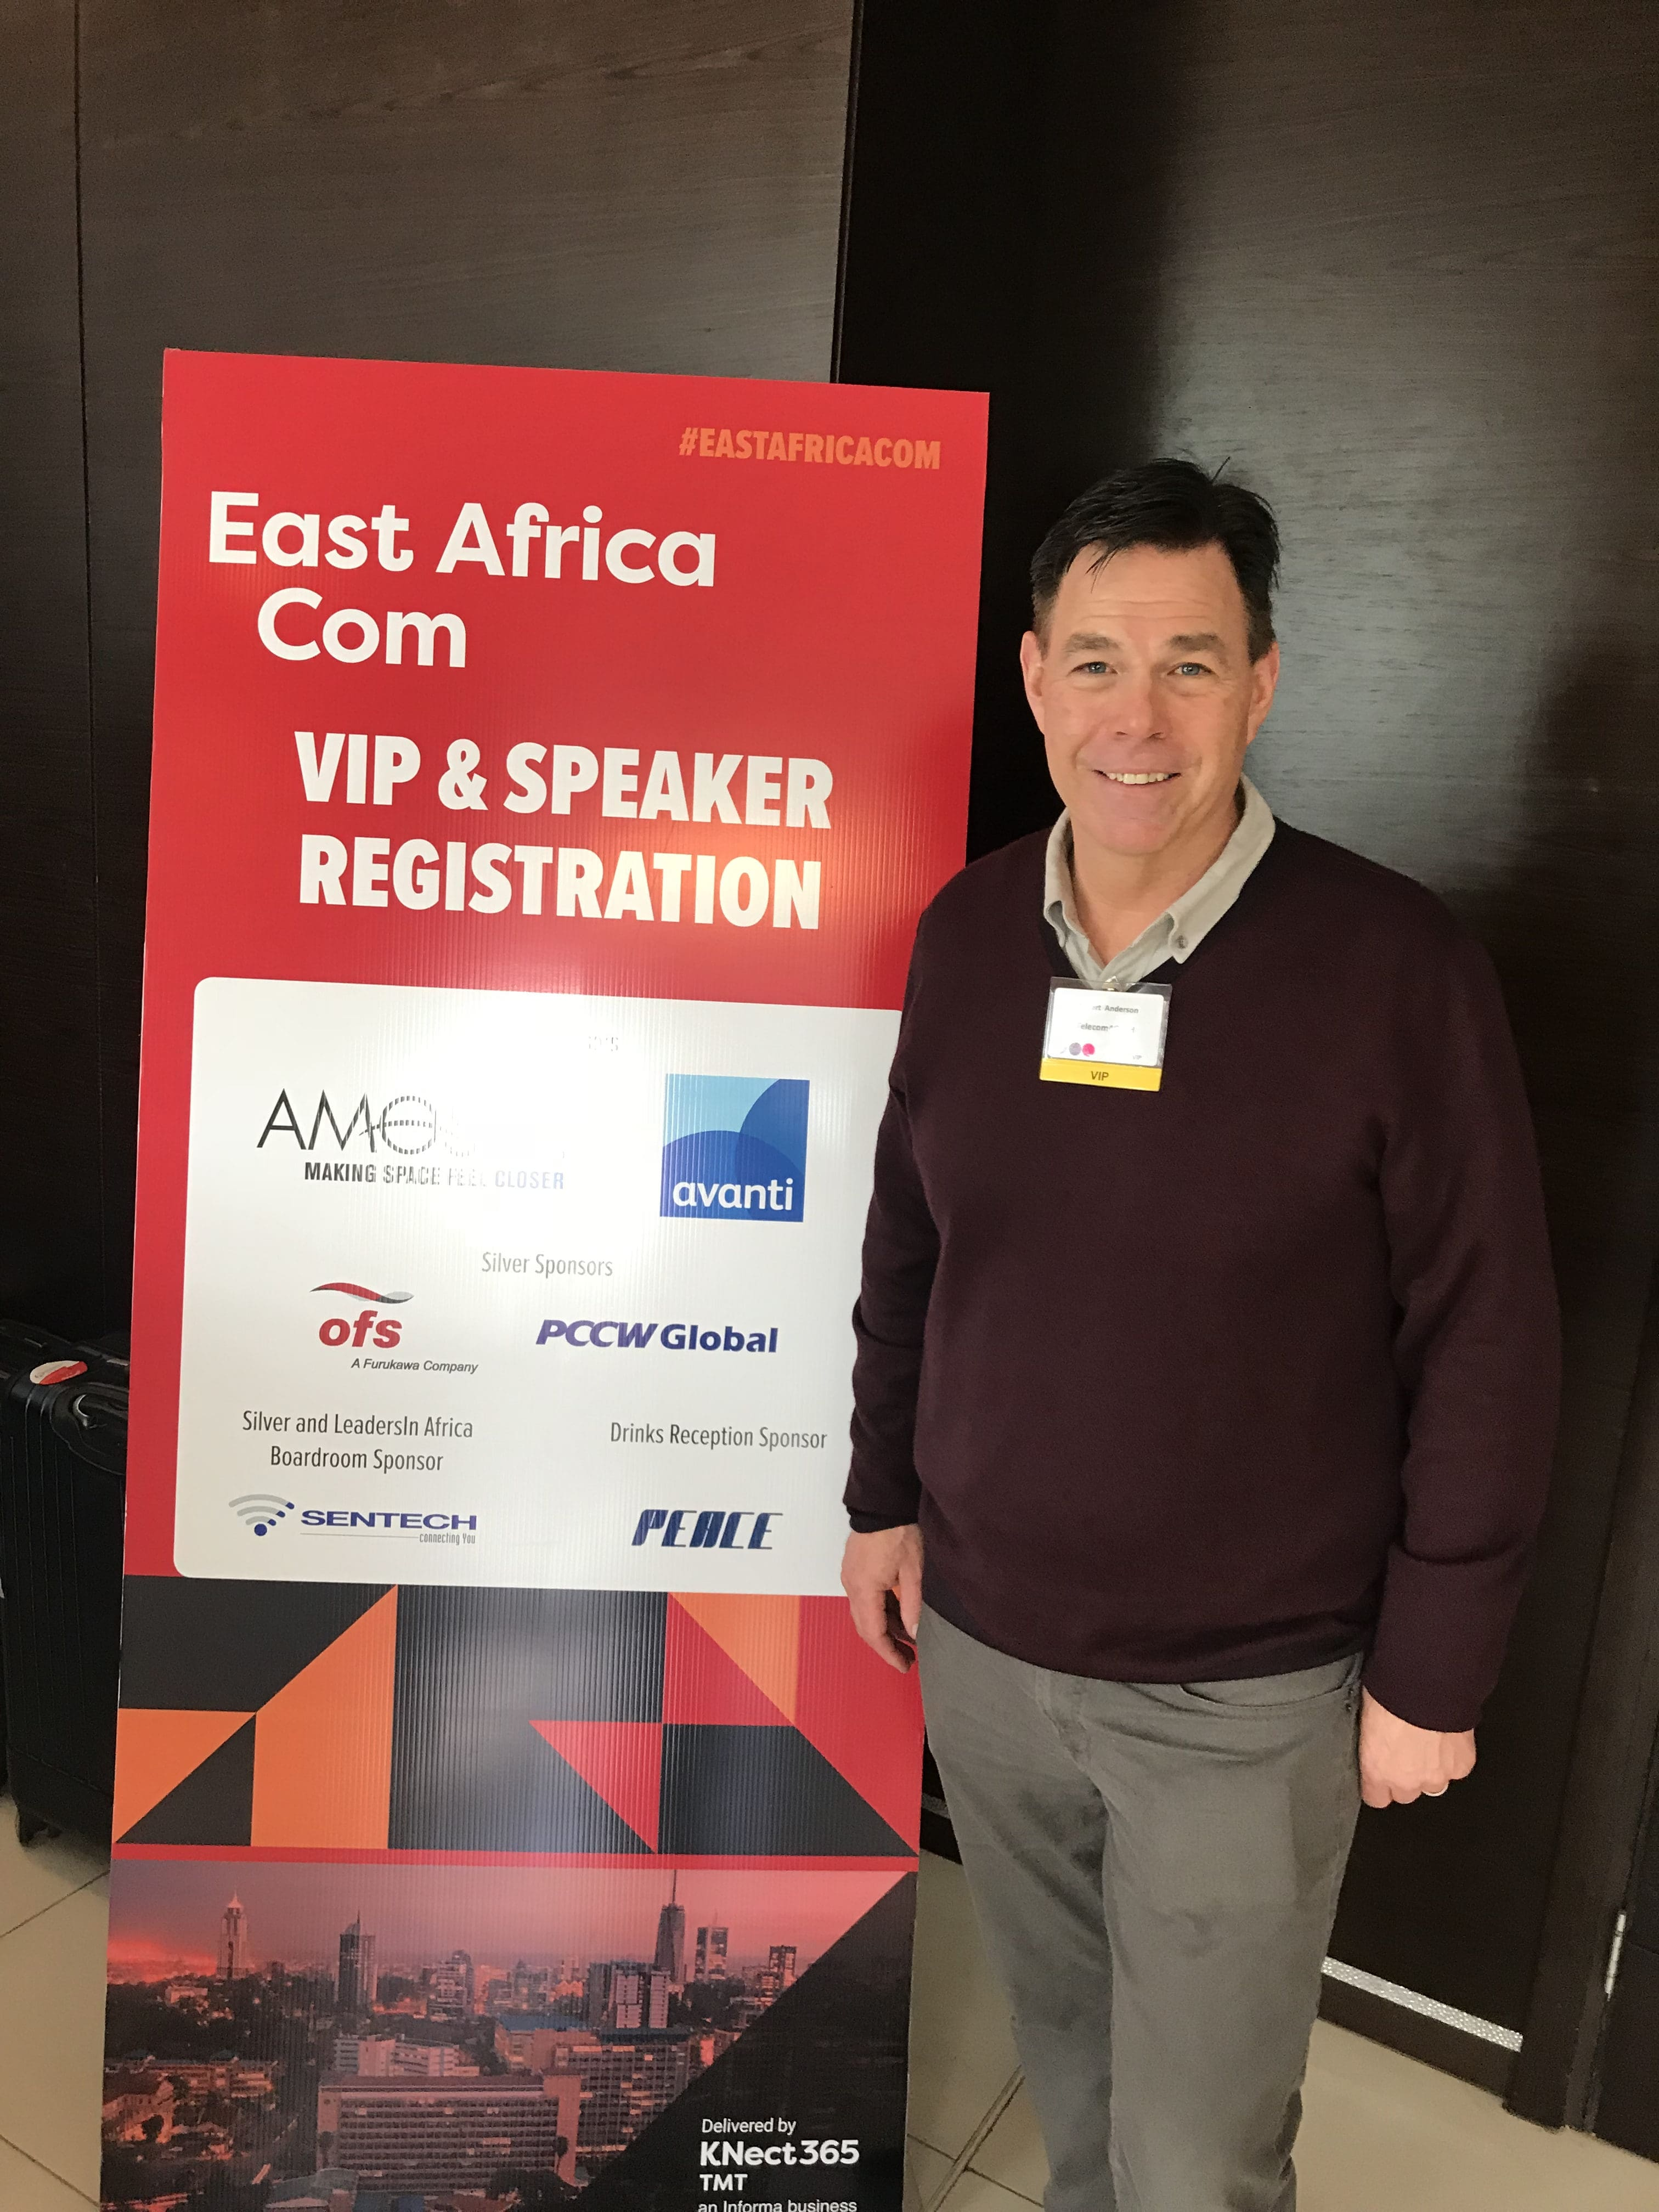 Telecom4Good Founder at East Africa Conference